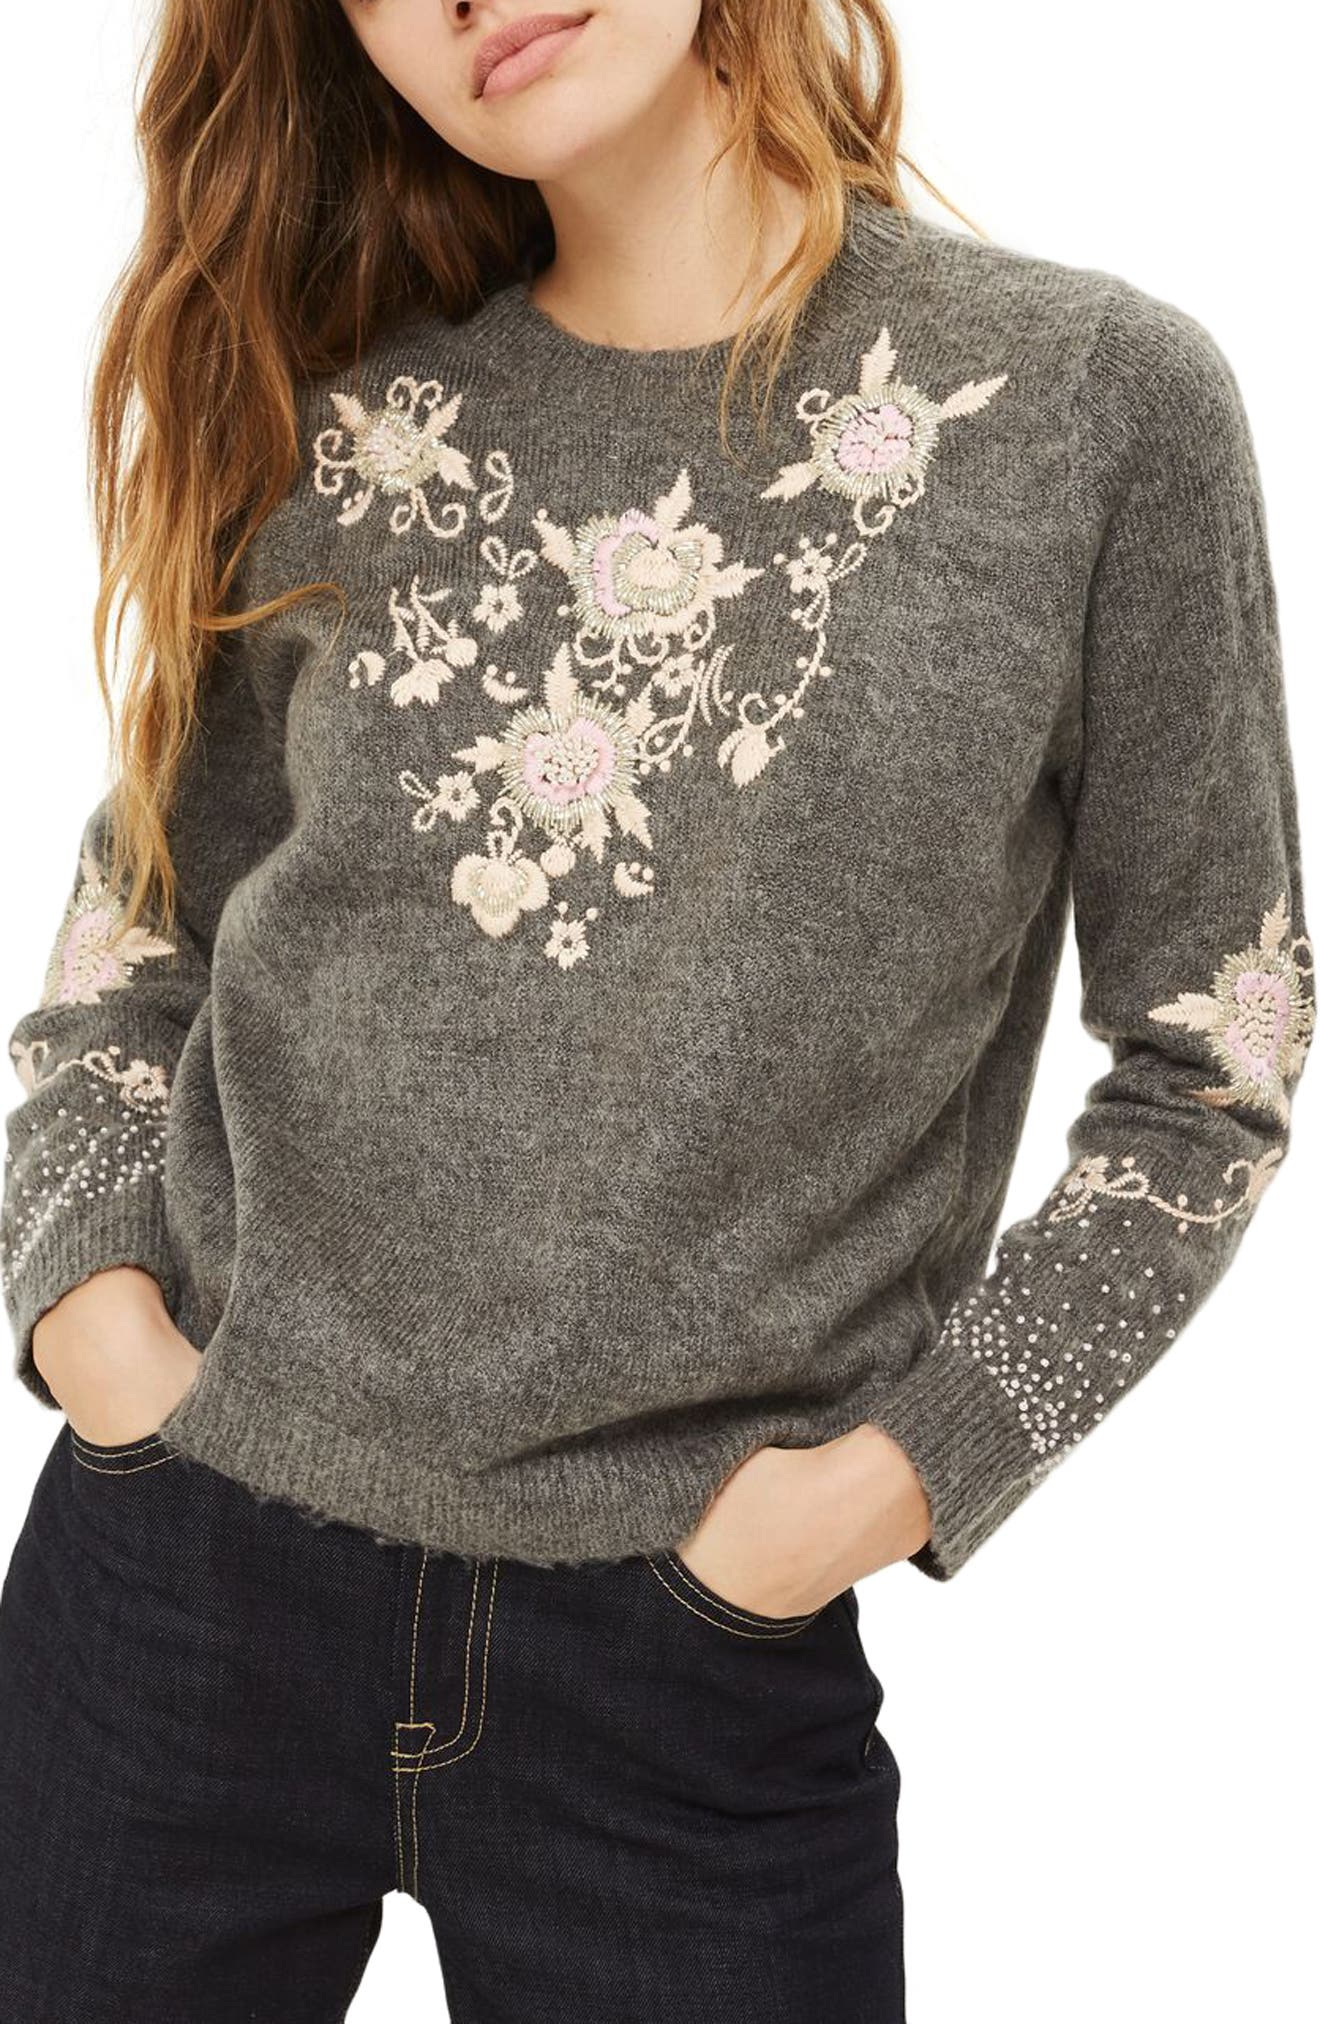 Topshop Beaded Embroidered Sweater